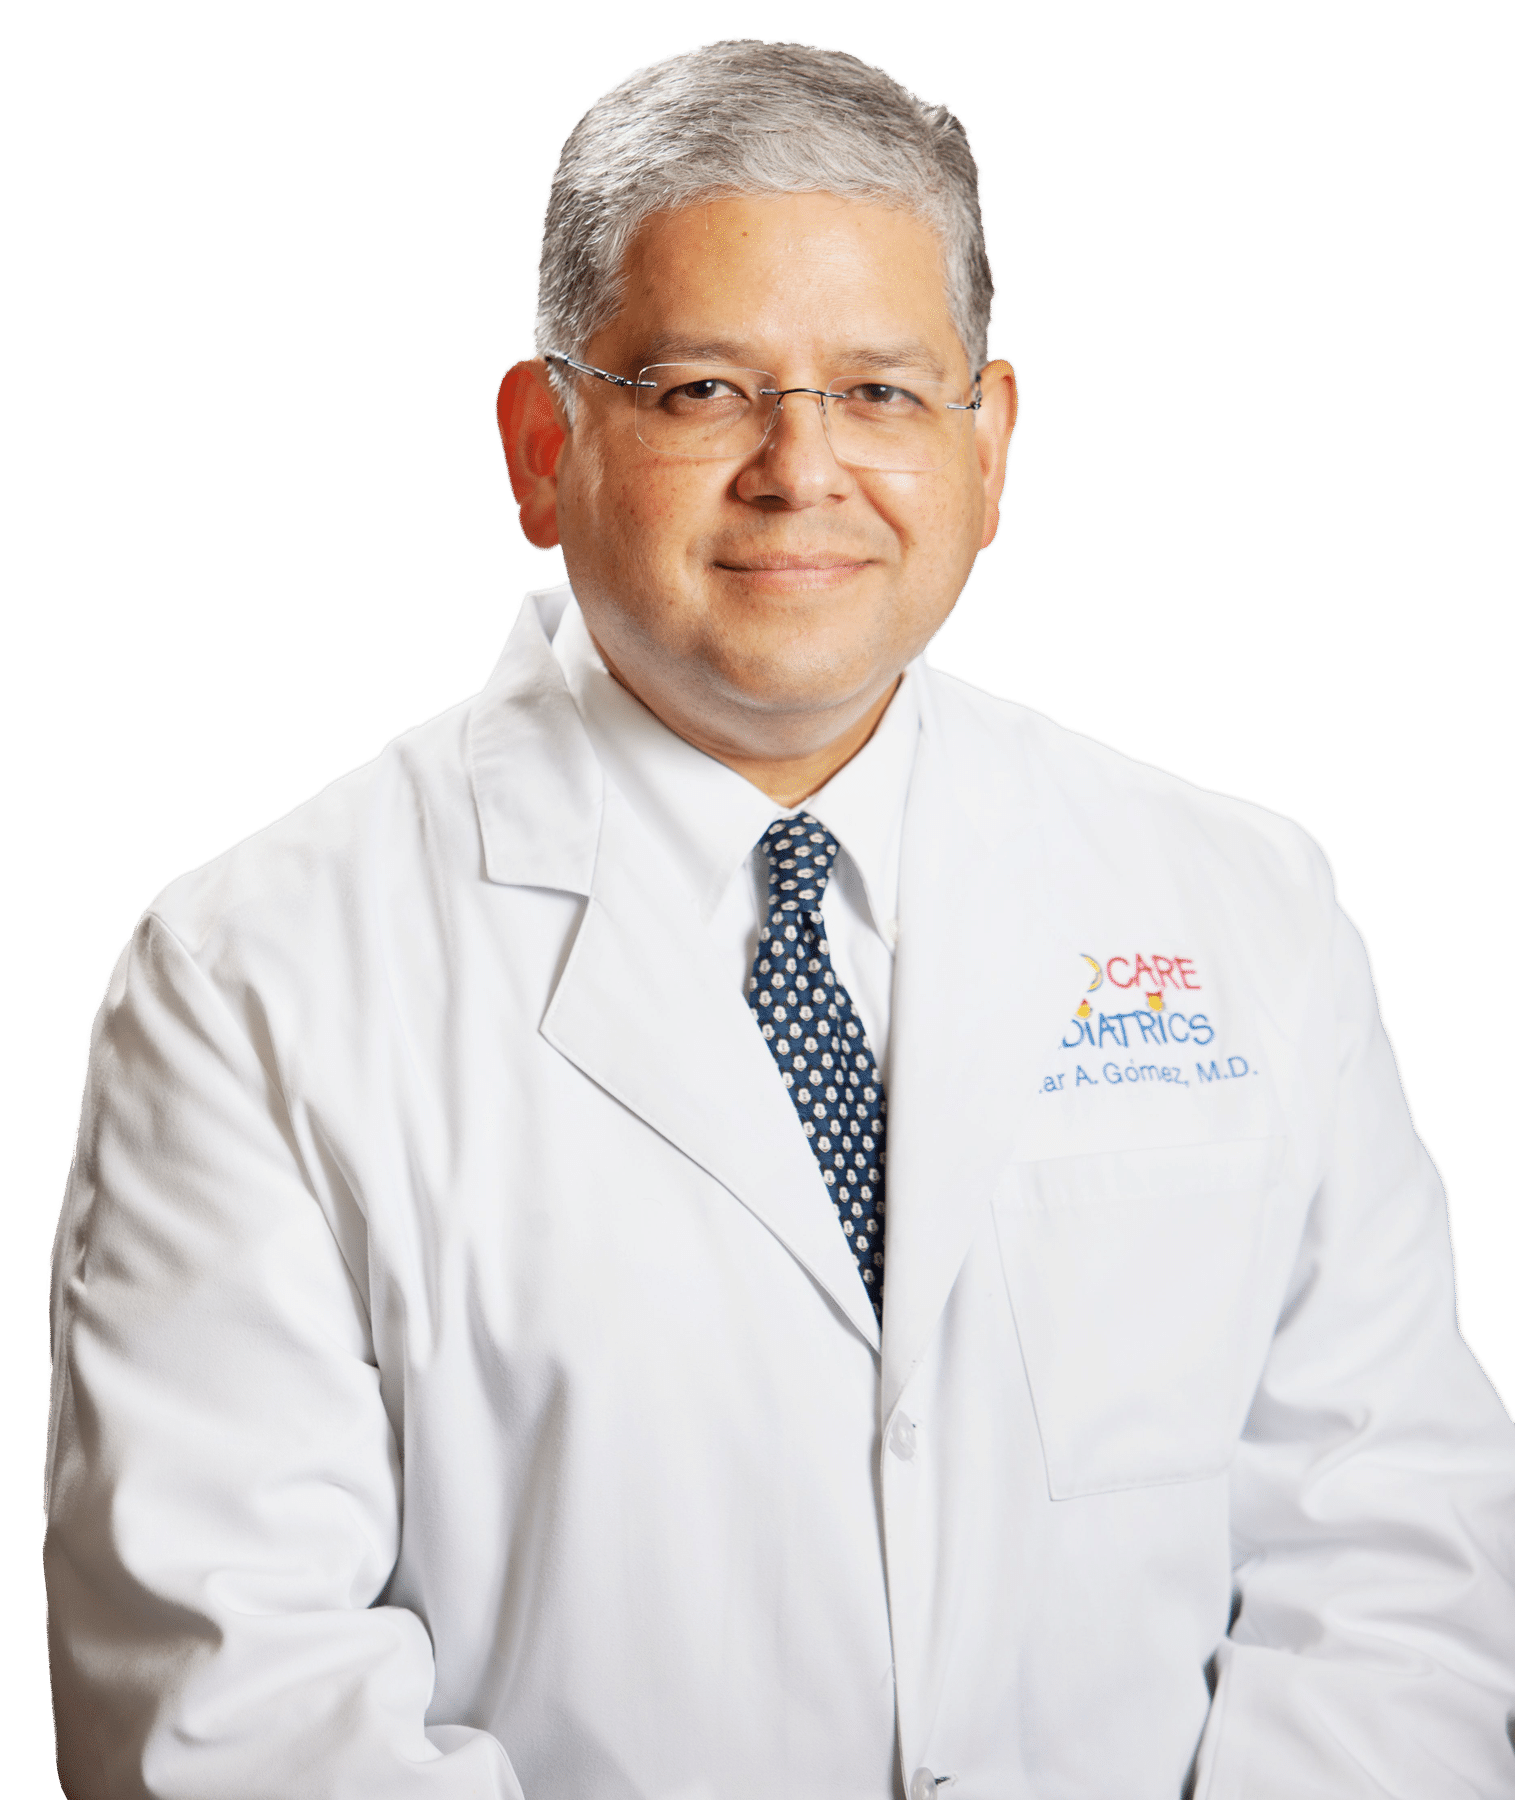 Dr. Omar A. Gomez at Kid Care Pediatrics